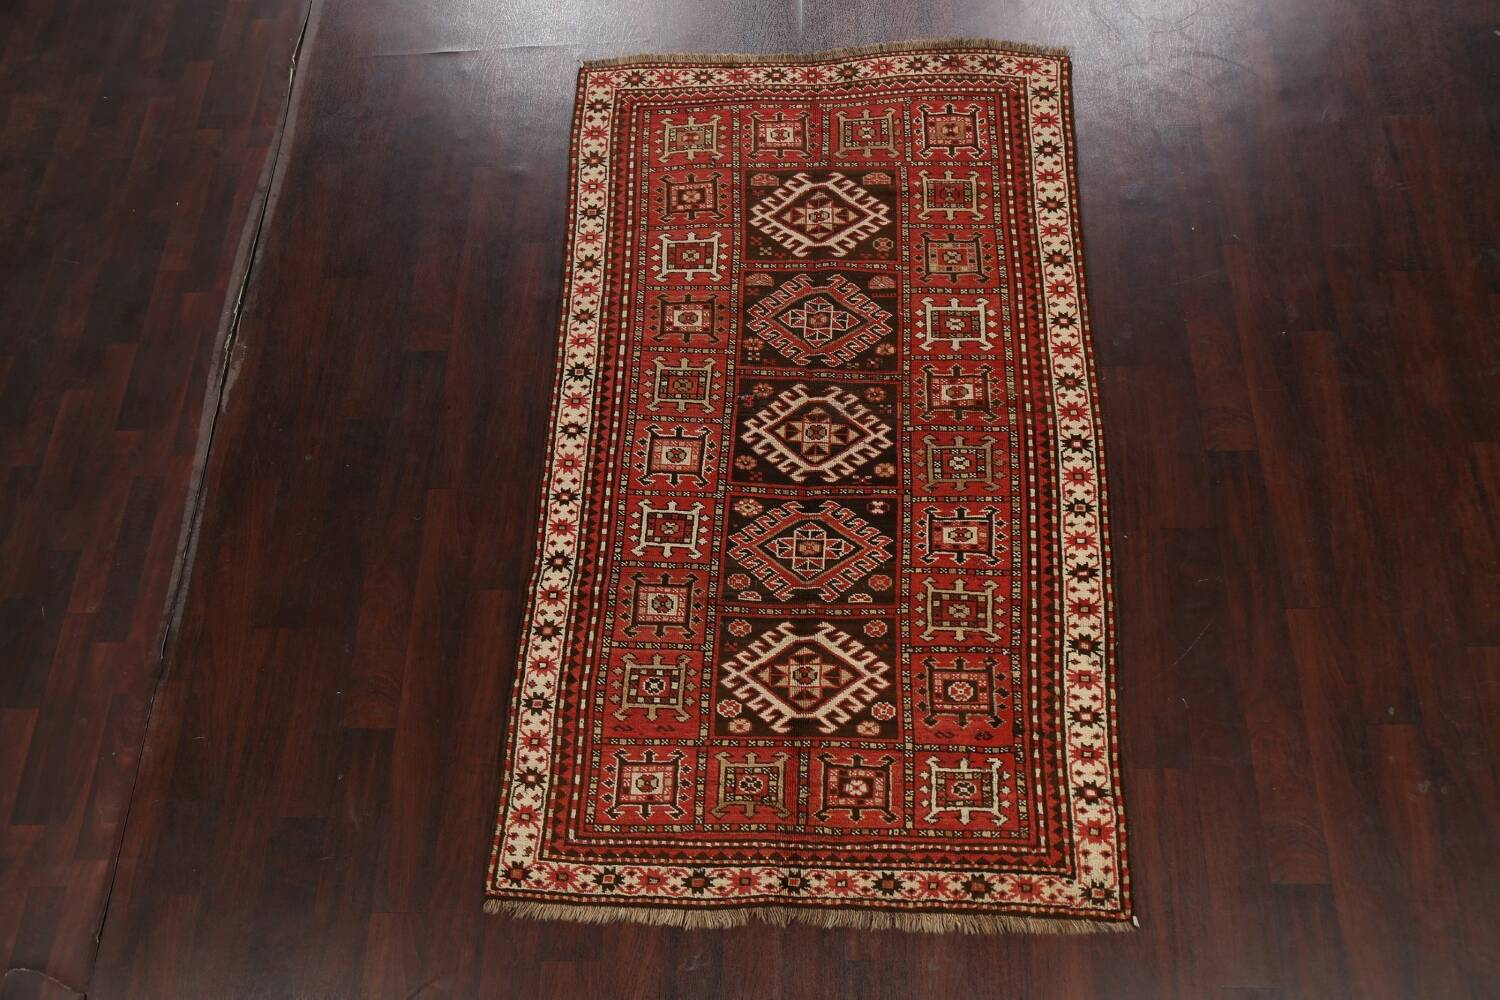 Vegetable Dye Geometric Kazak Oriental Area Rug 5x8 image 2